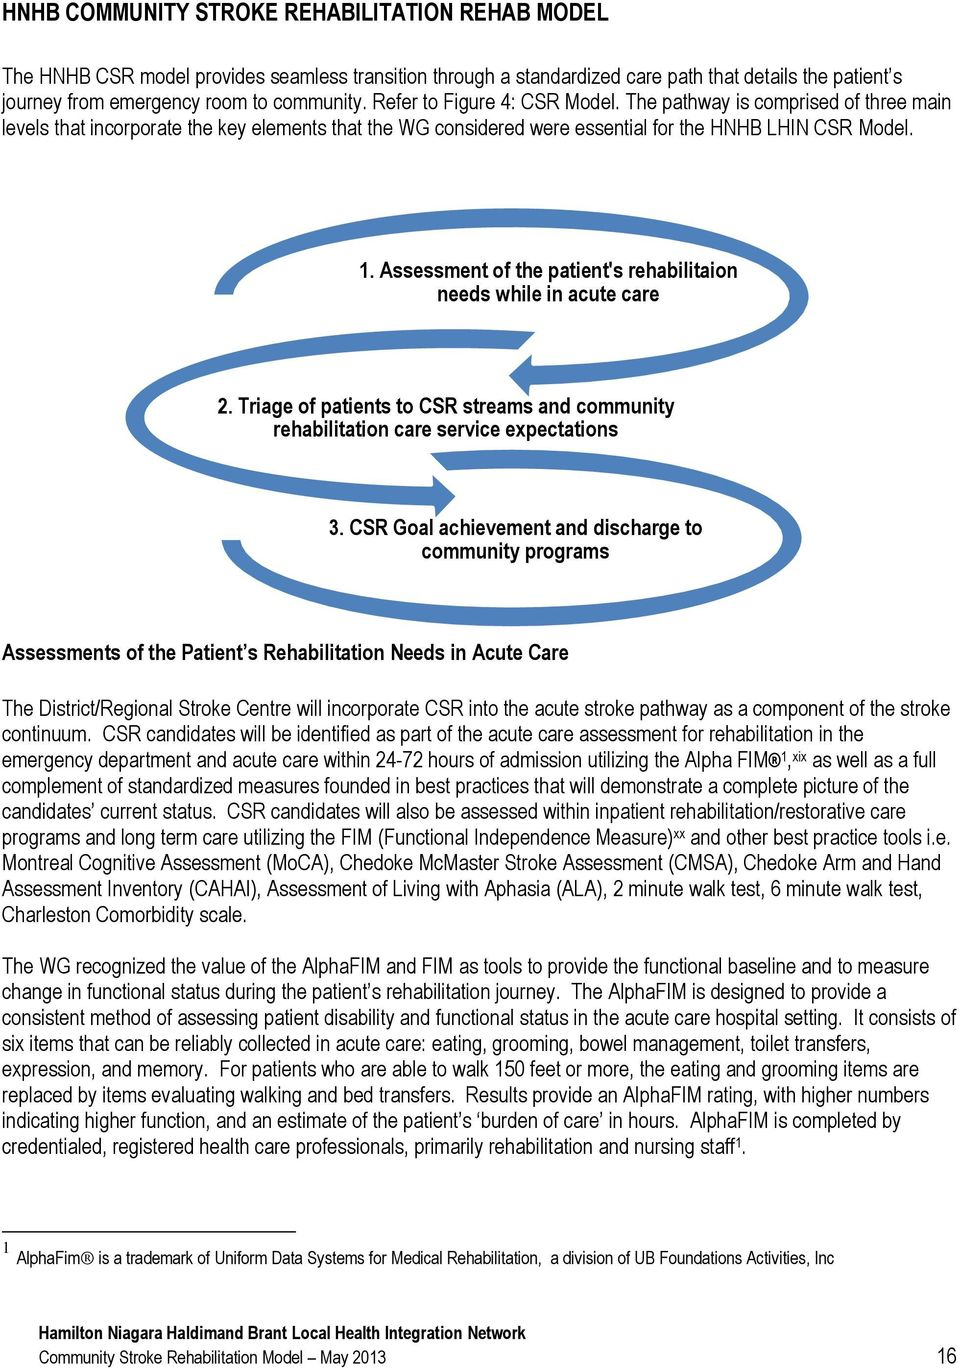 Assessment of the patient's rehabilitaion needs while in acute care 2. Triage of patients to CSR streams and community rehabilitation care service expectations 3.